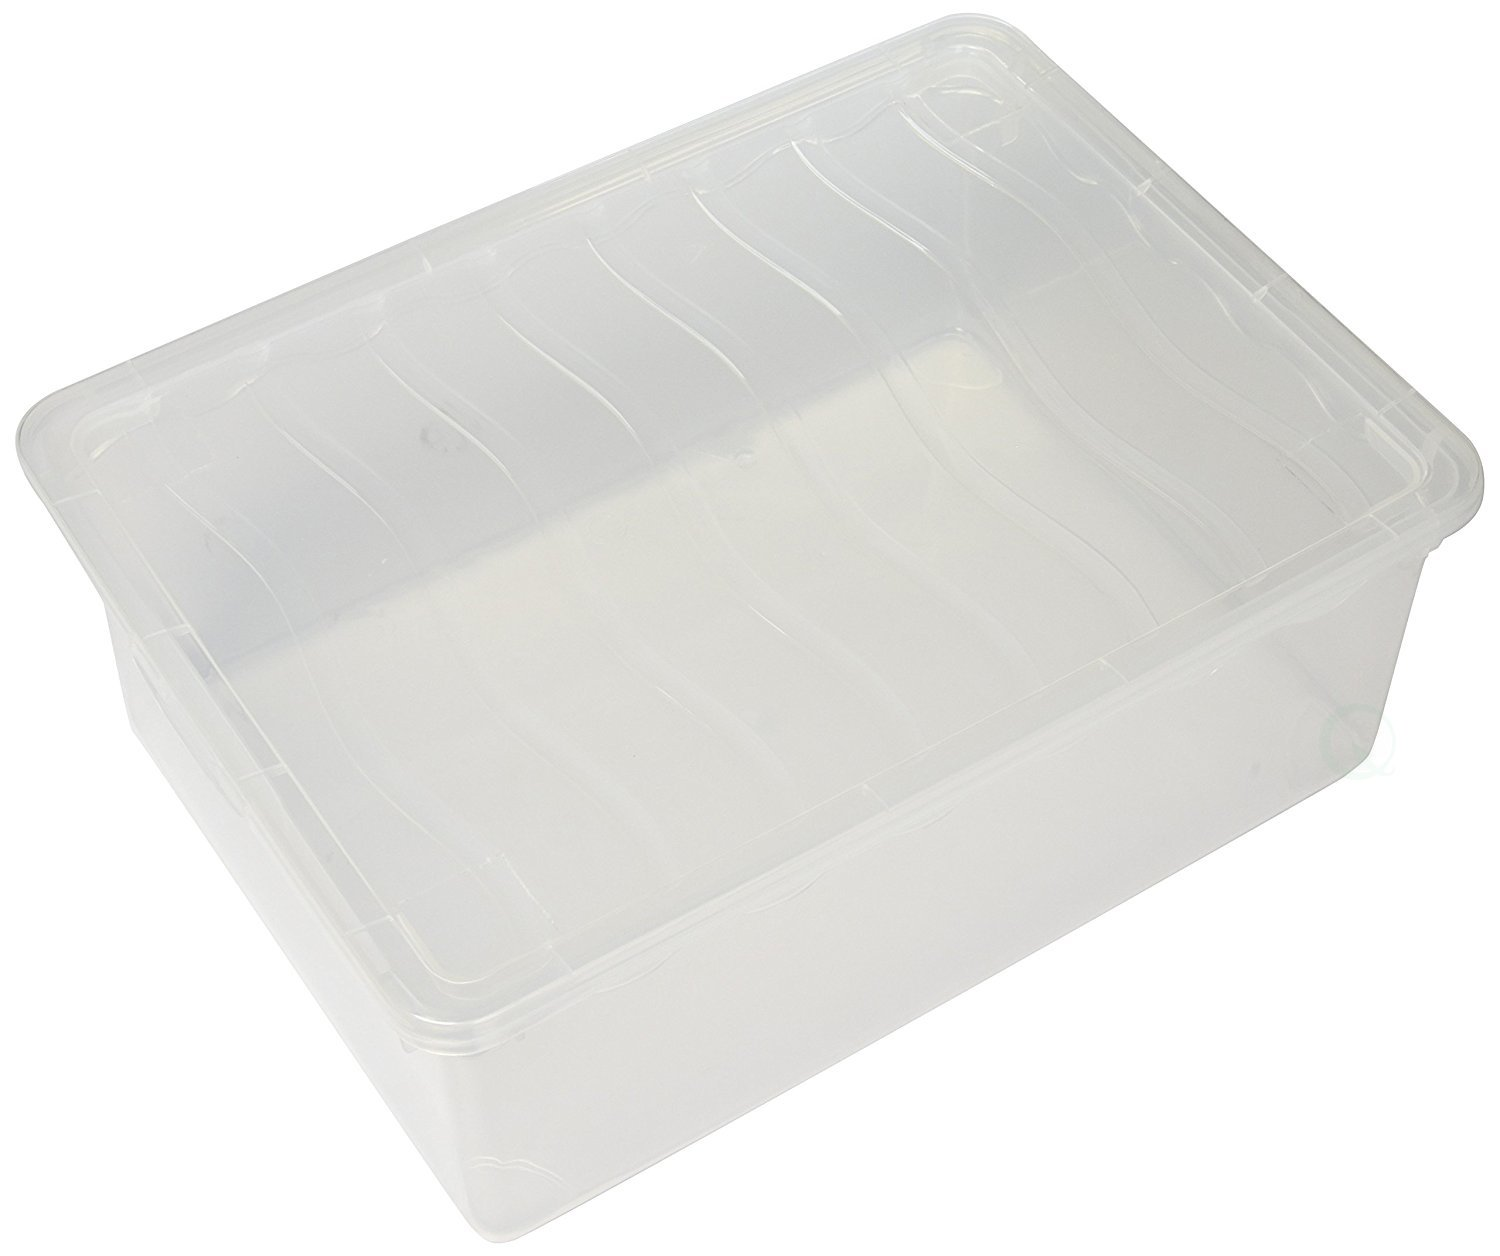 Plastic Storage Container, Shoe box Quickway Imports QI003259